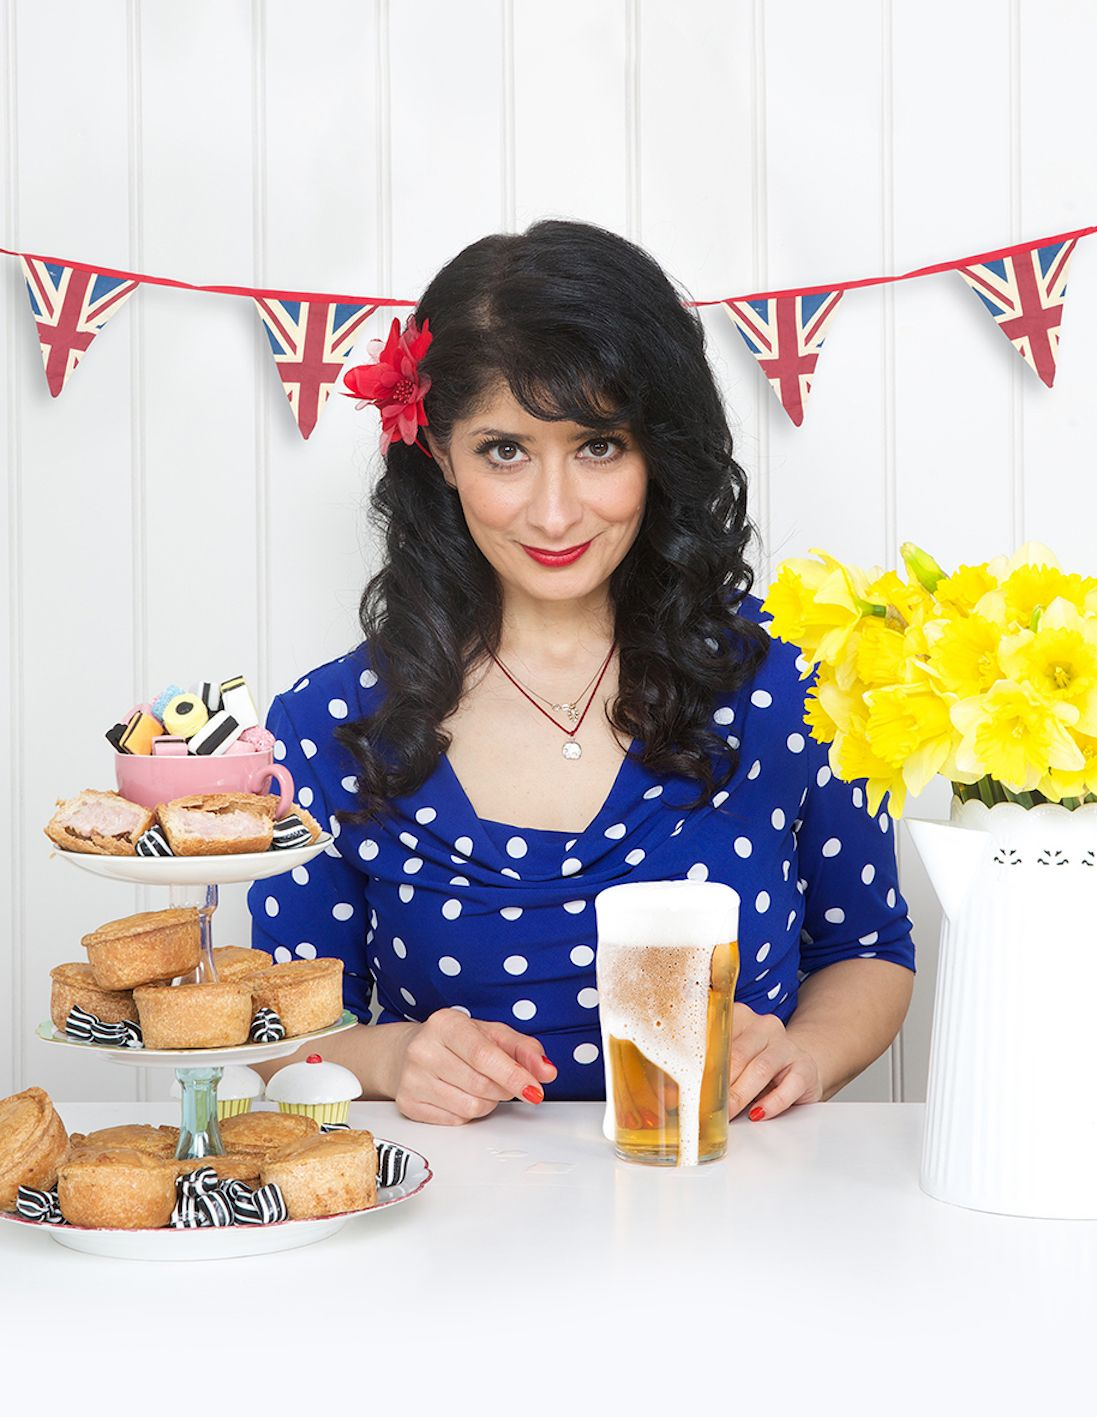 THE Big Interview with Shappi Khorsandi ahead of her appearance at The Brewhouse in Taunton